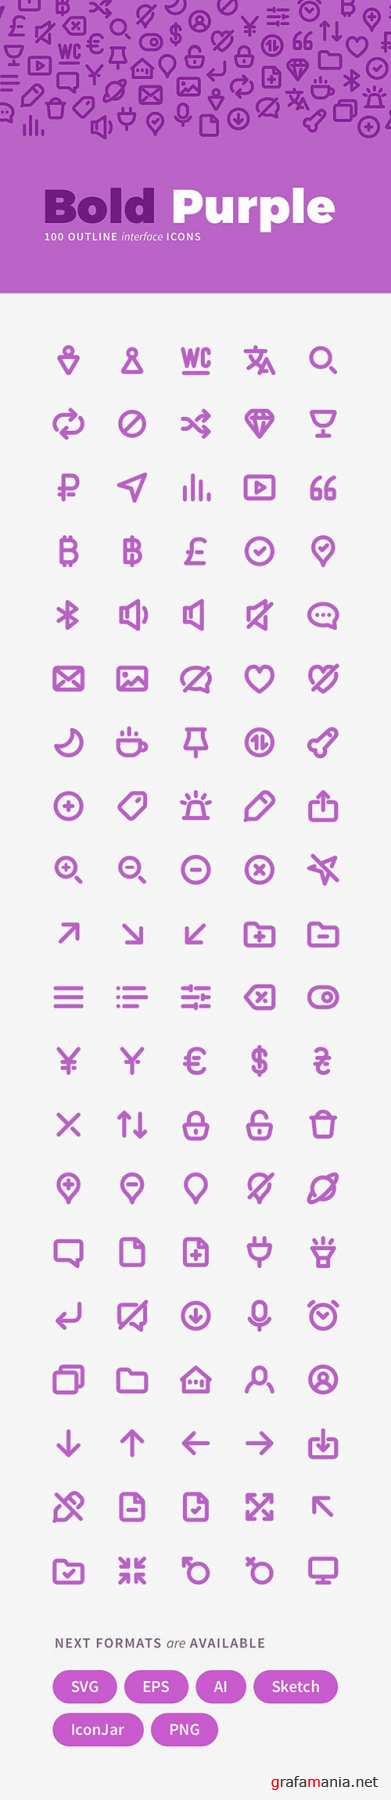 AI, EPS, PNG, SVG Vector Web Icons - Bold Purple